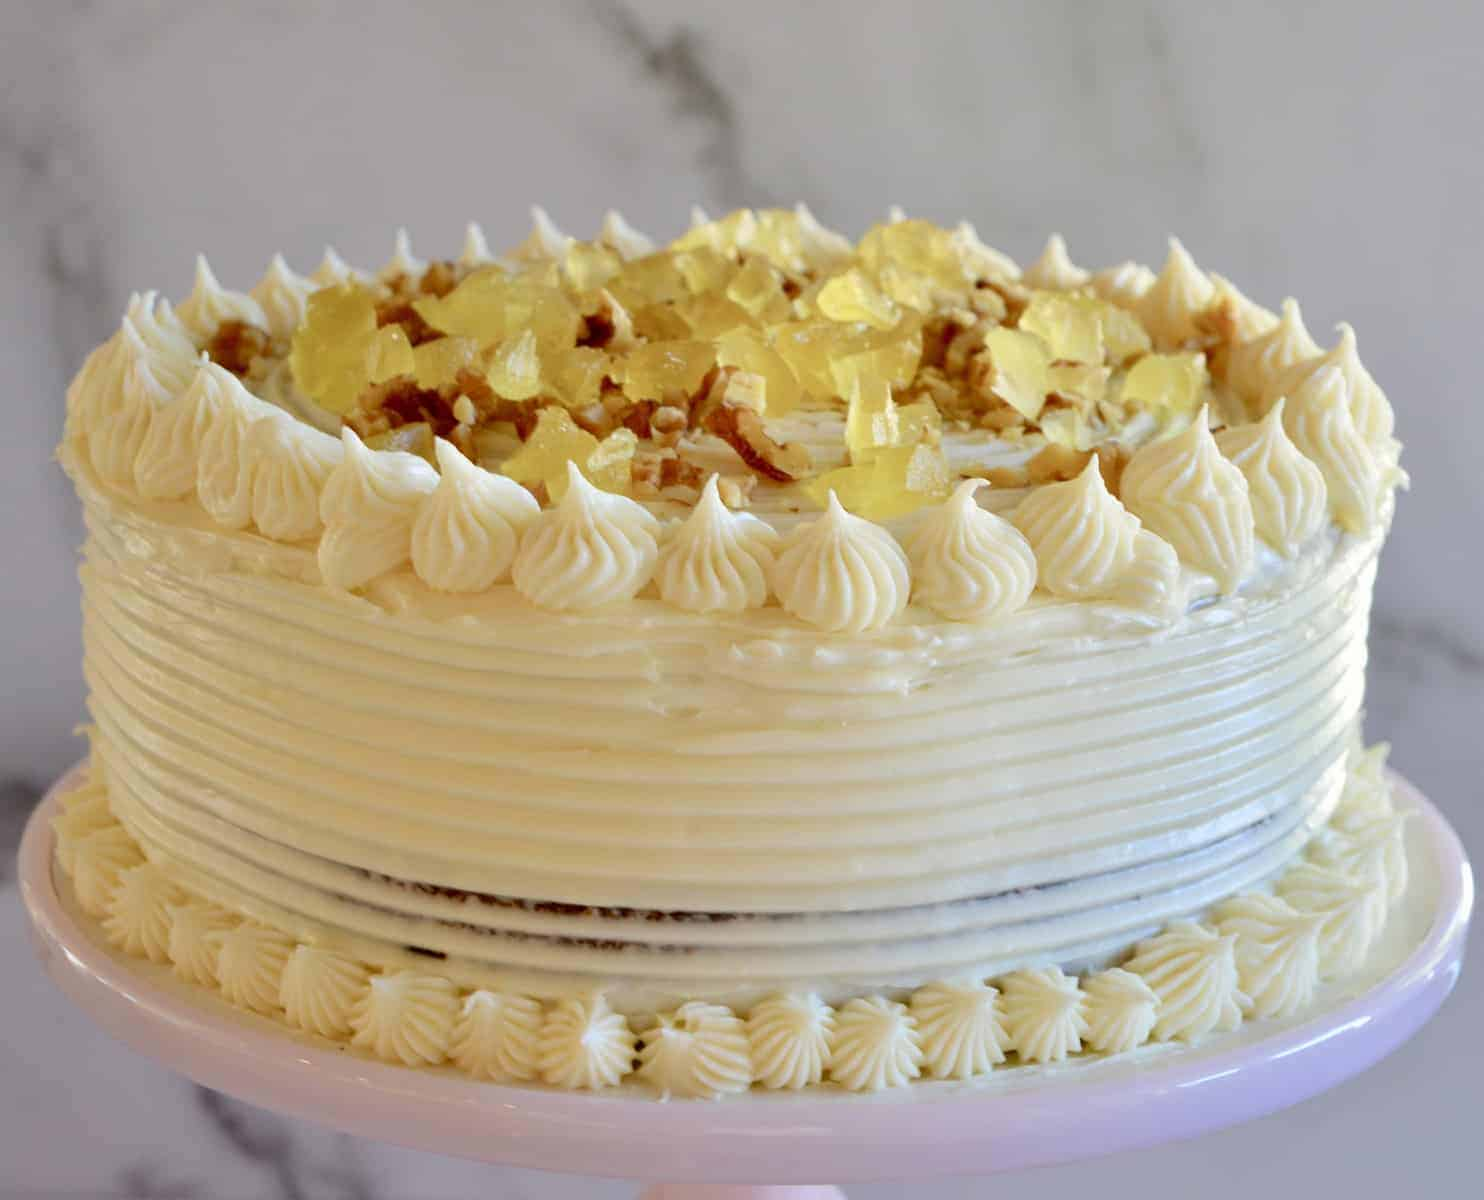 Carrot Pineapple Cake with candied pineapple topping